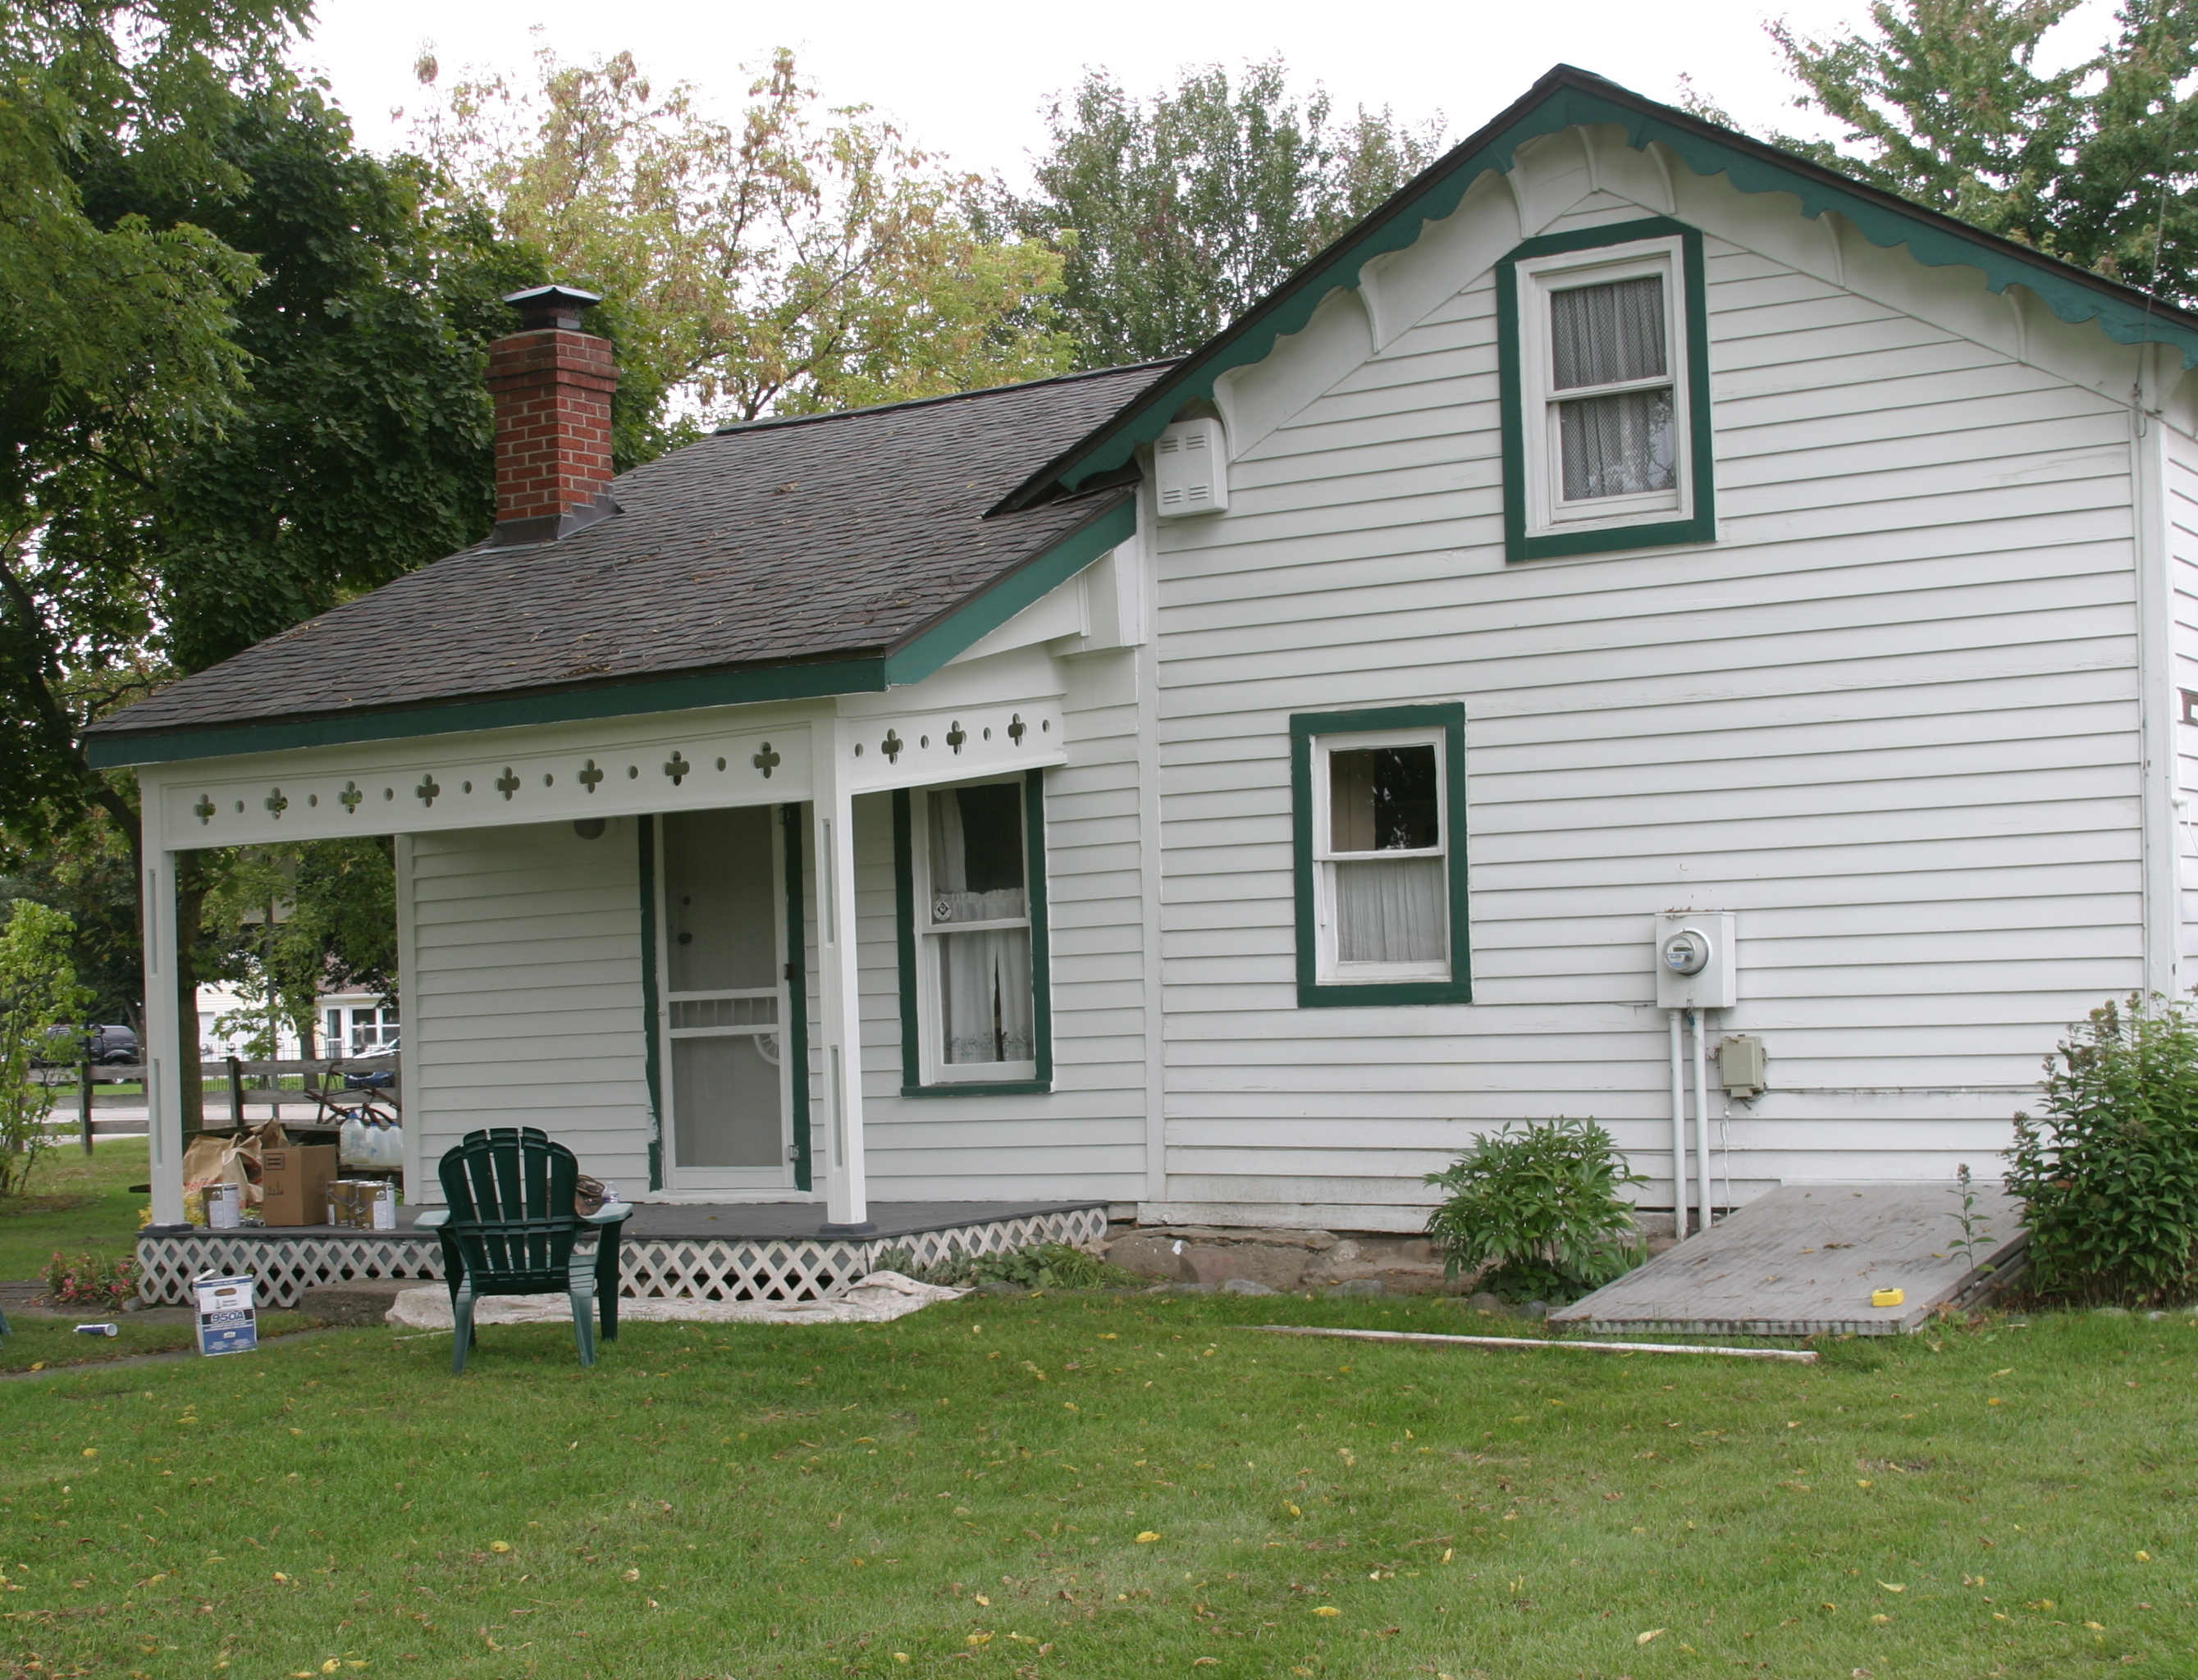 File:Wixom-Wire House.JPG - Wikimedia Commons